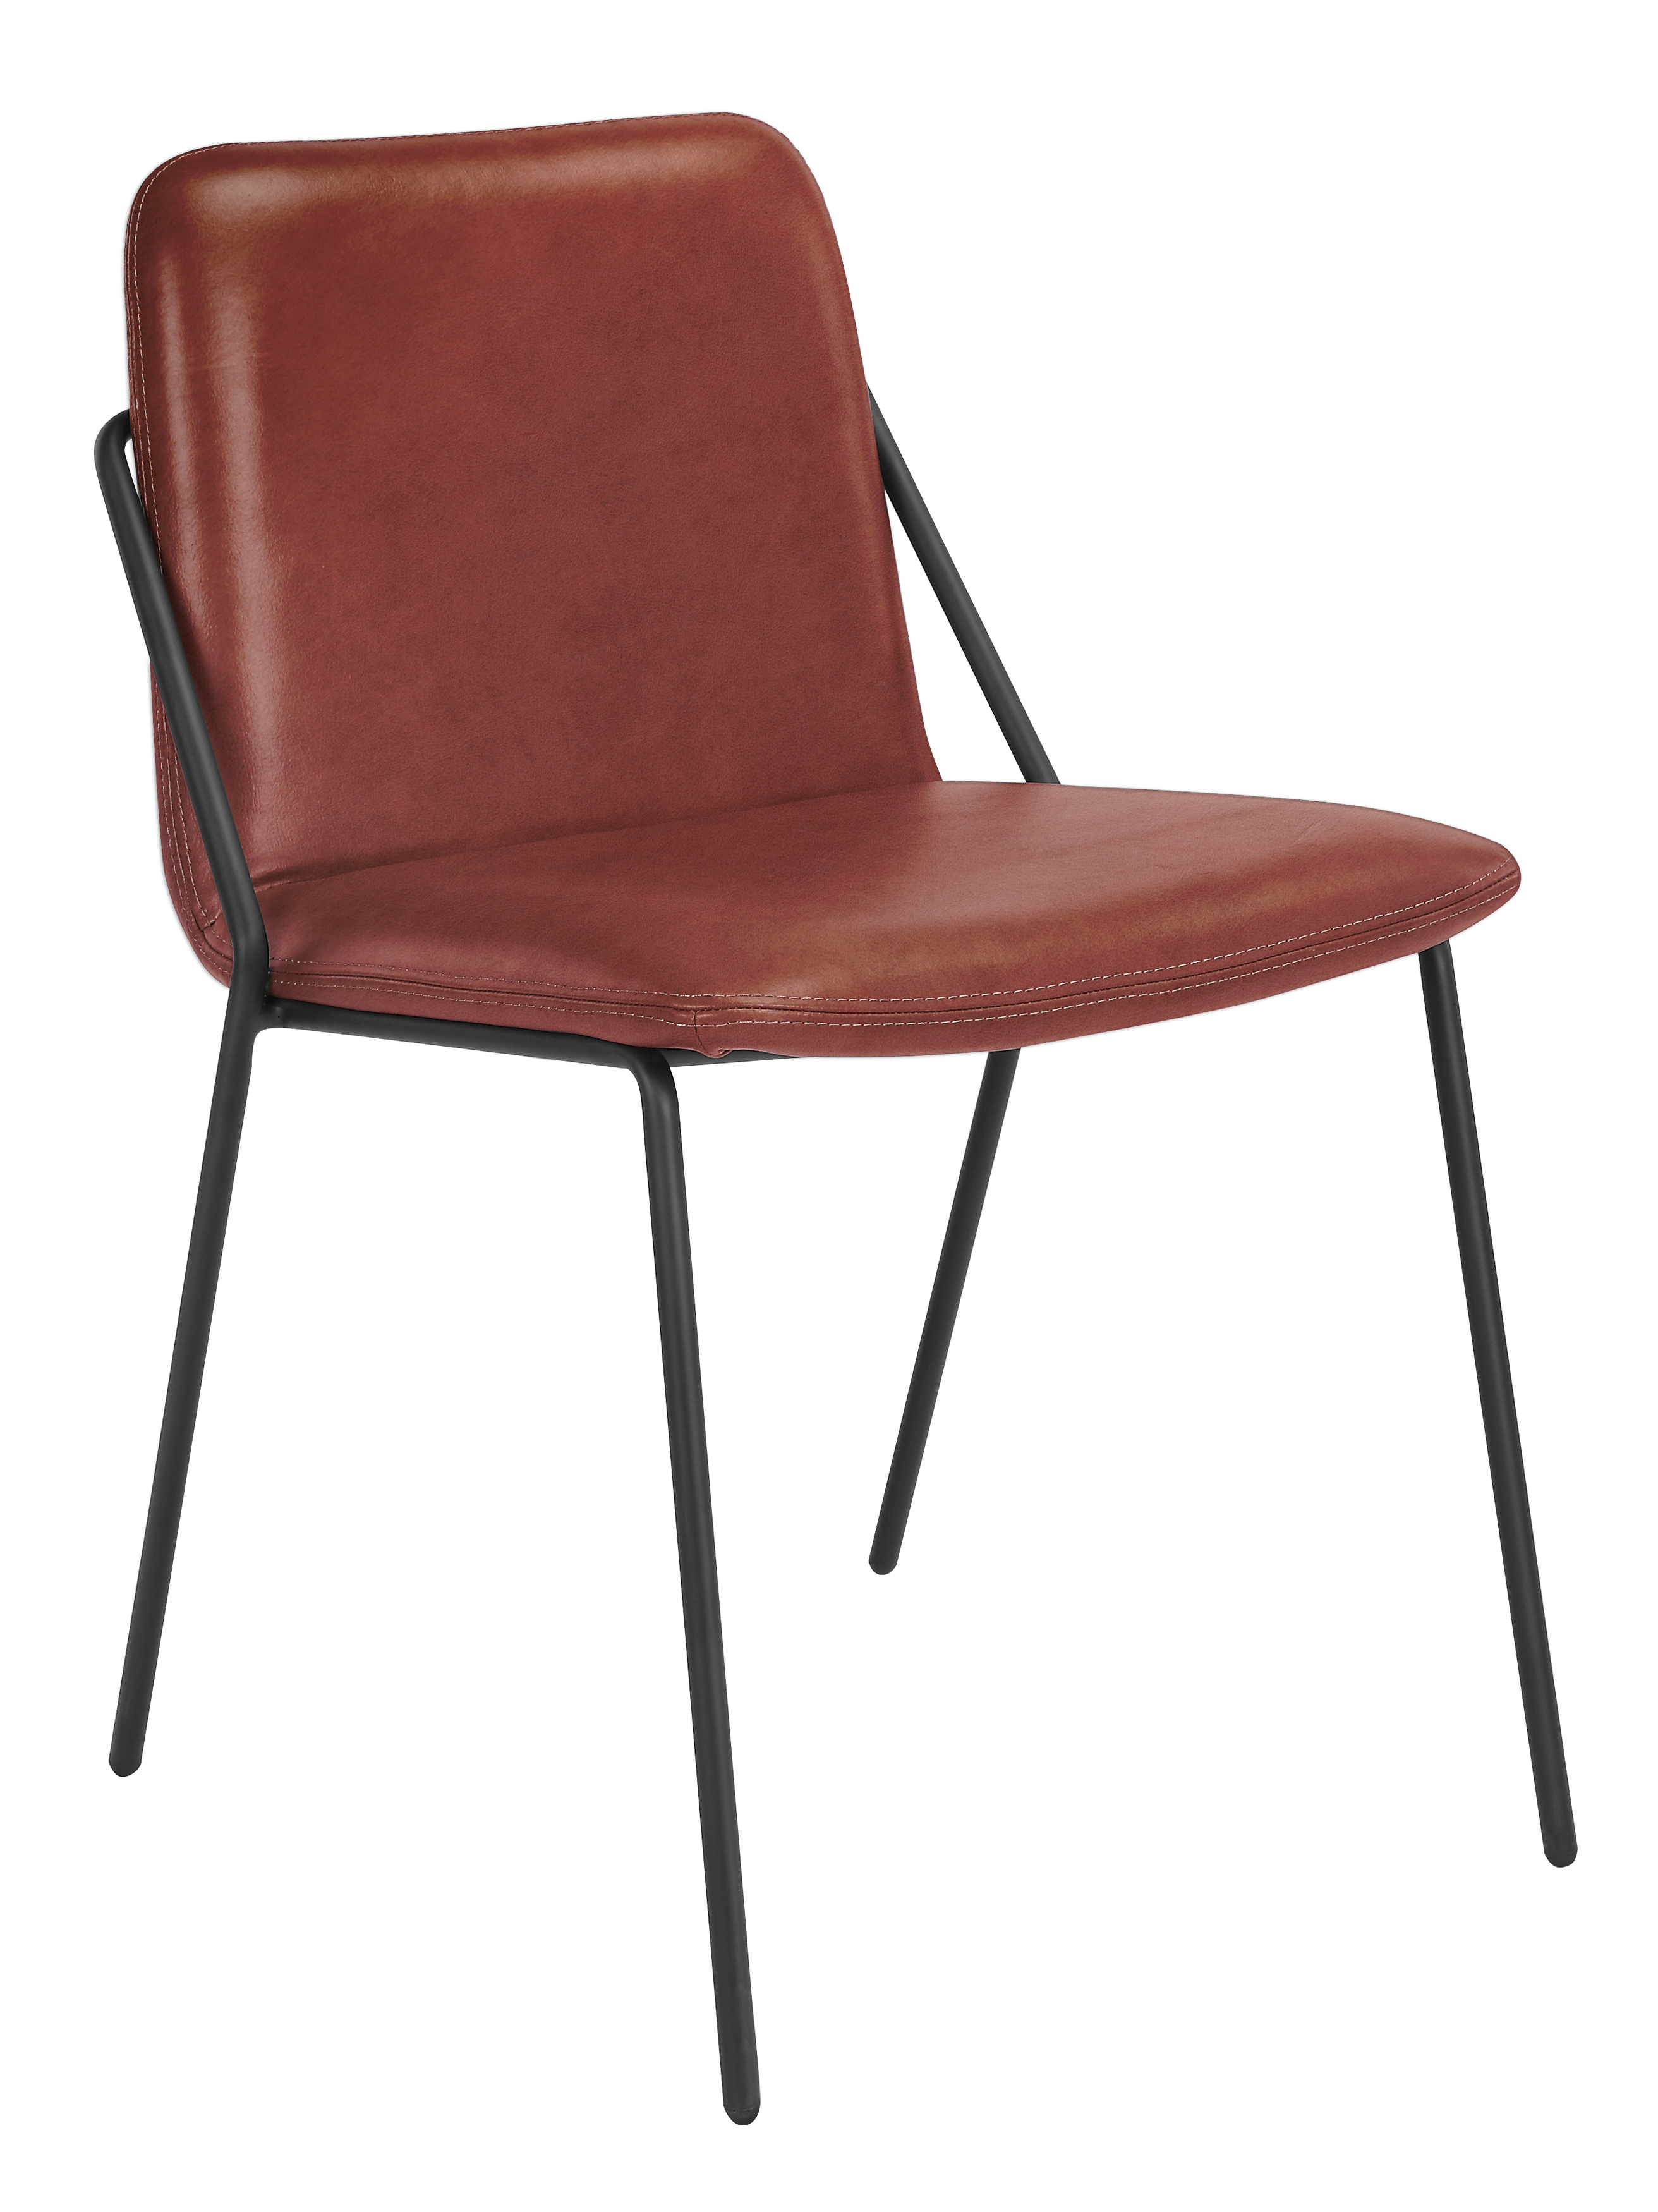 Sling Dining Chair Upholstered | M.A.D.